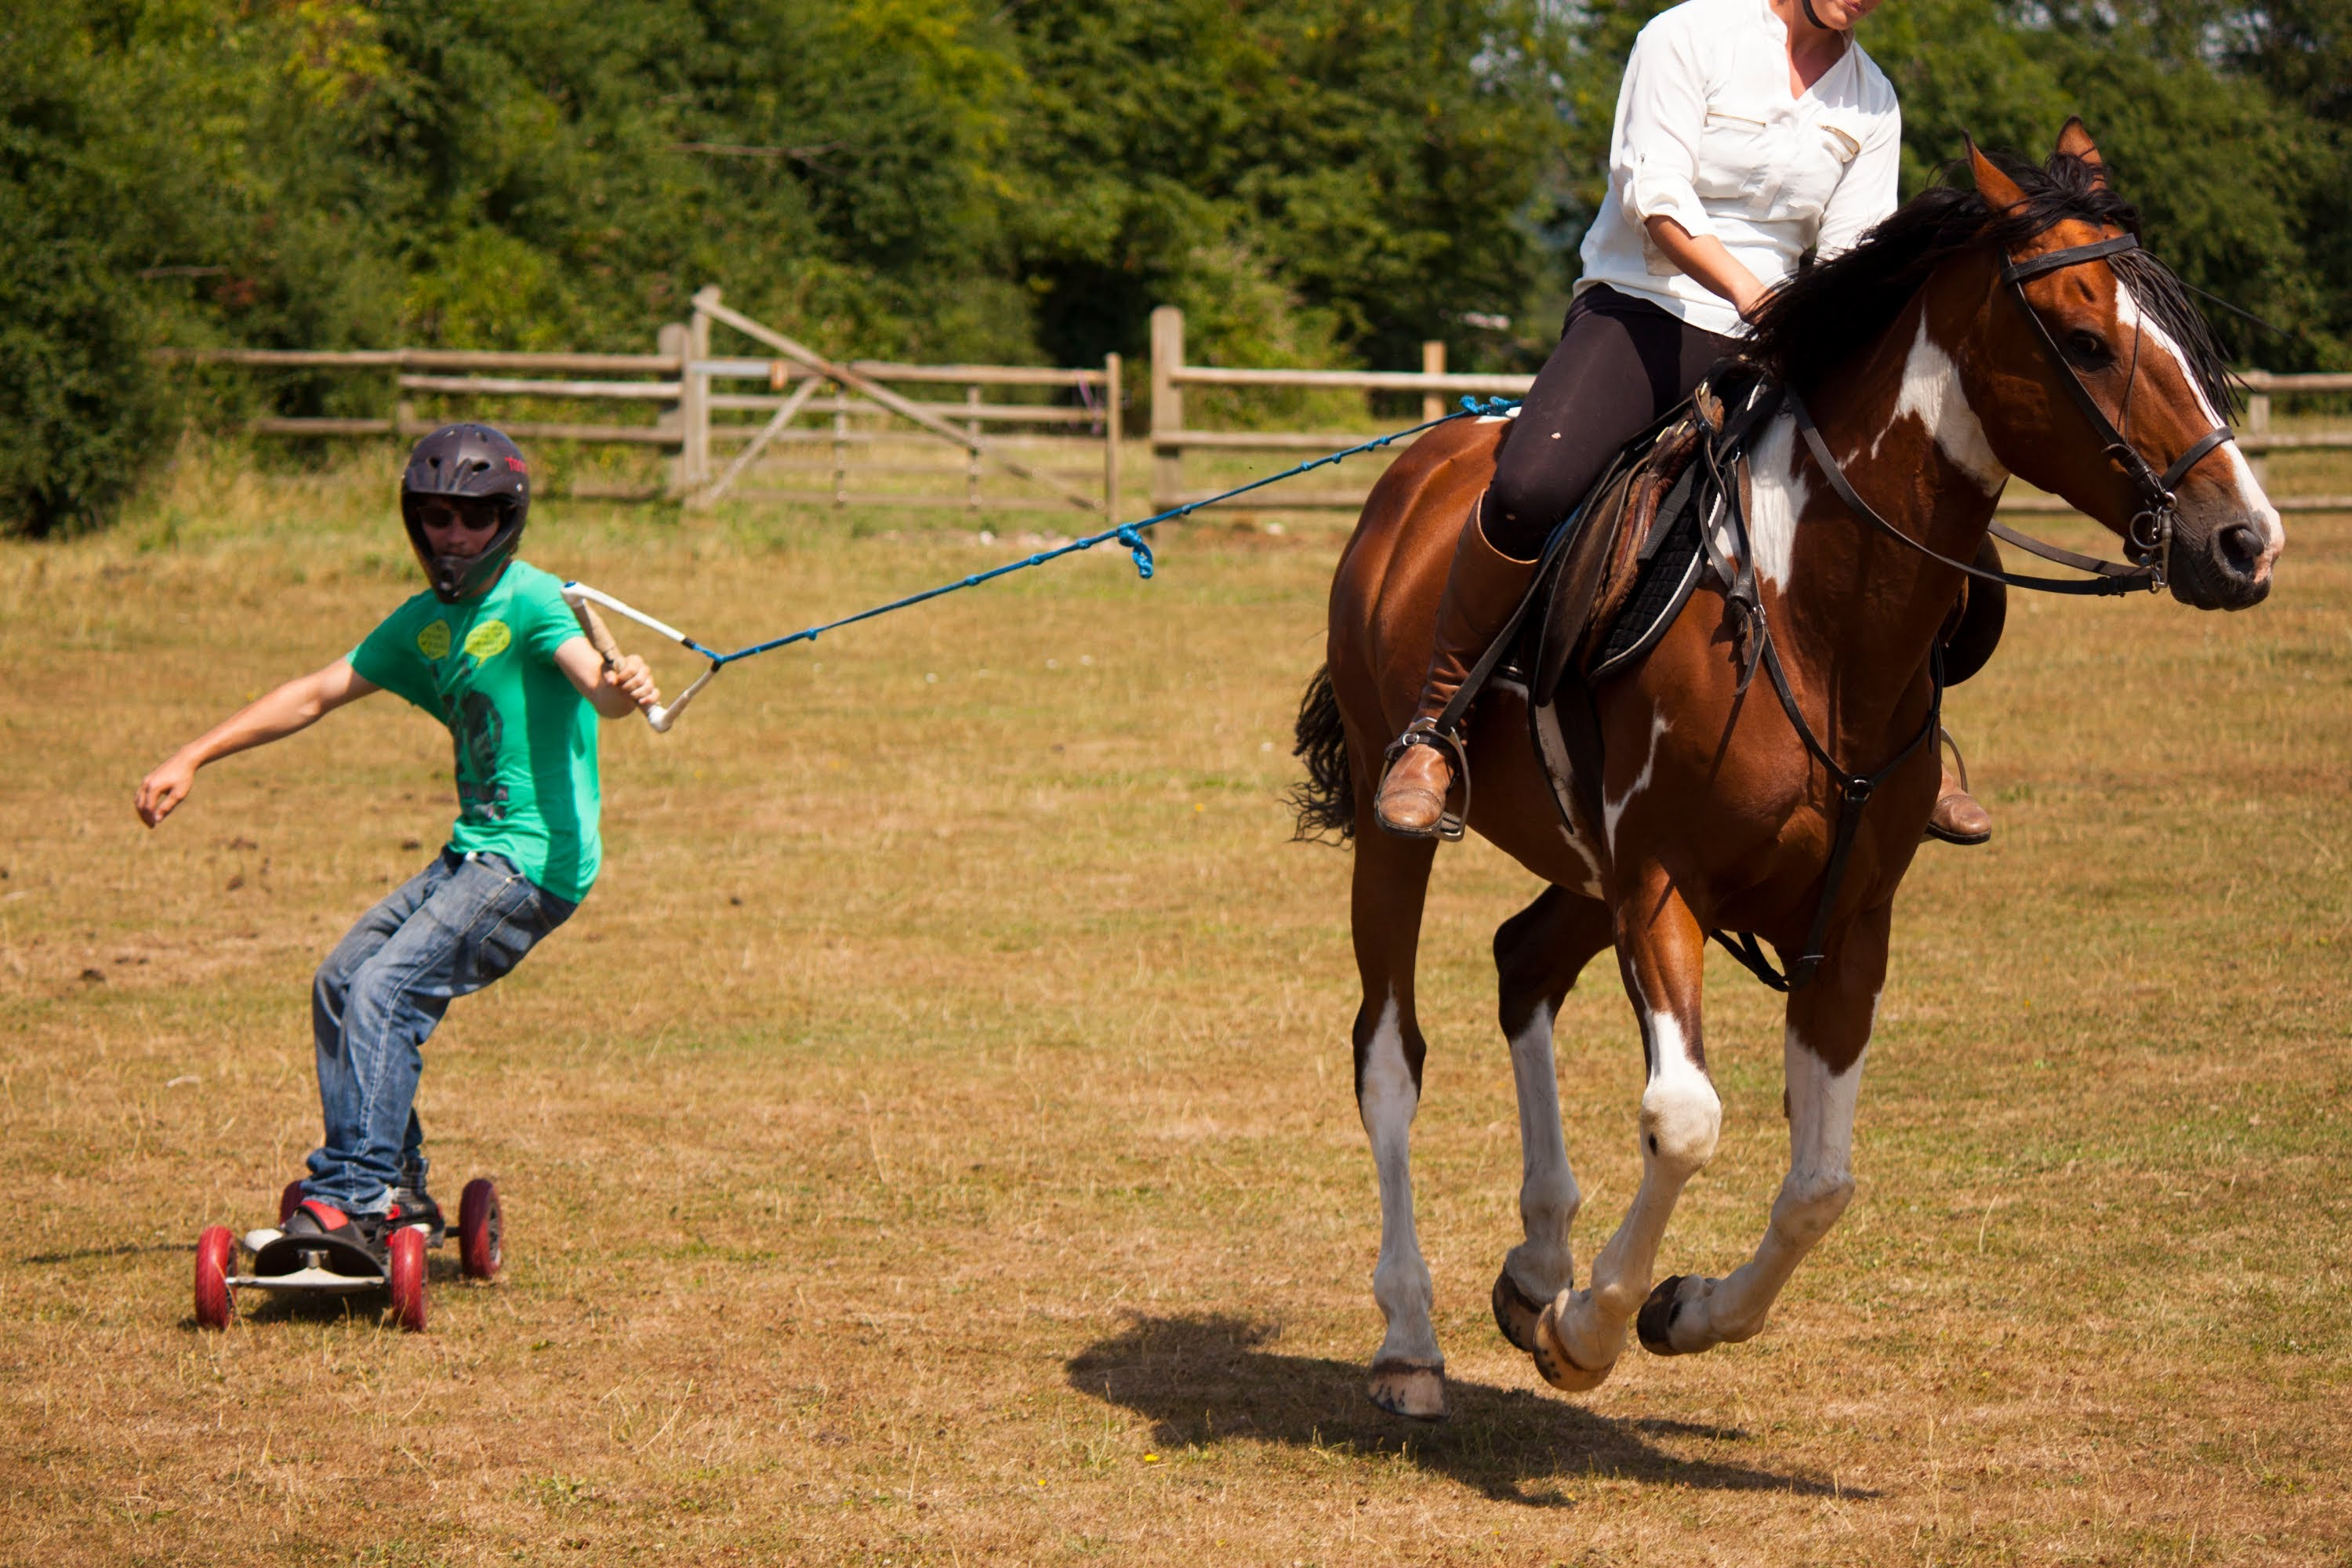 Get the best horse riding training at Roachdale IN